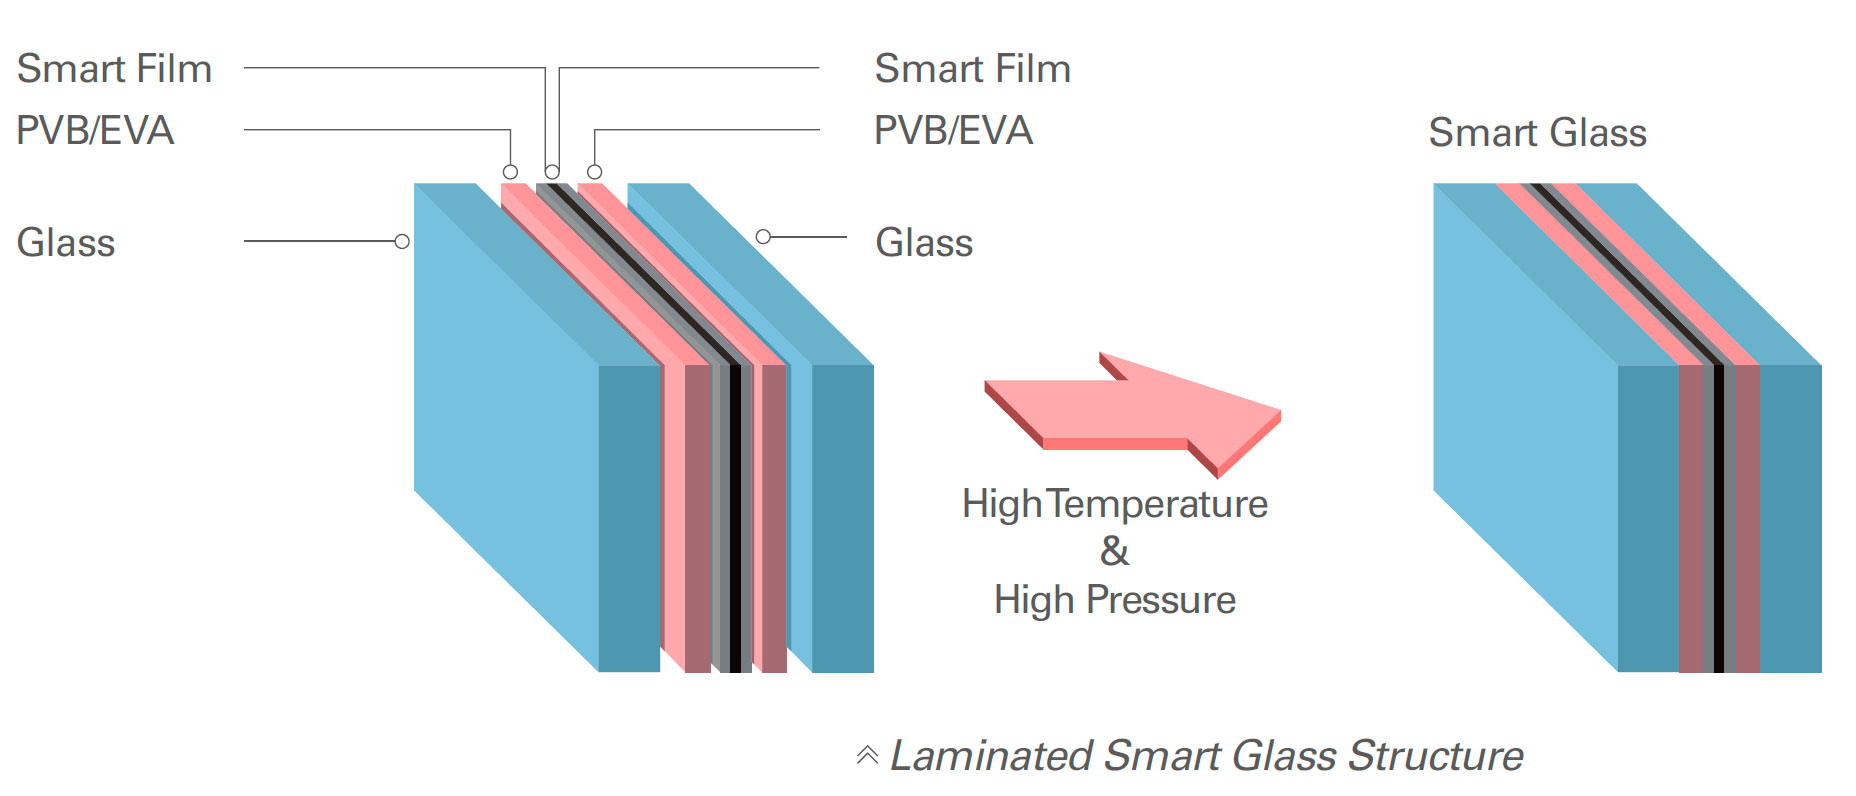 What is dimming glass